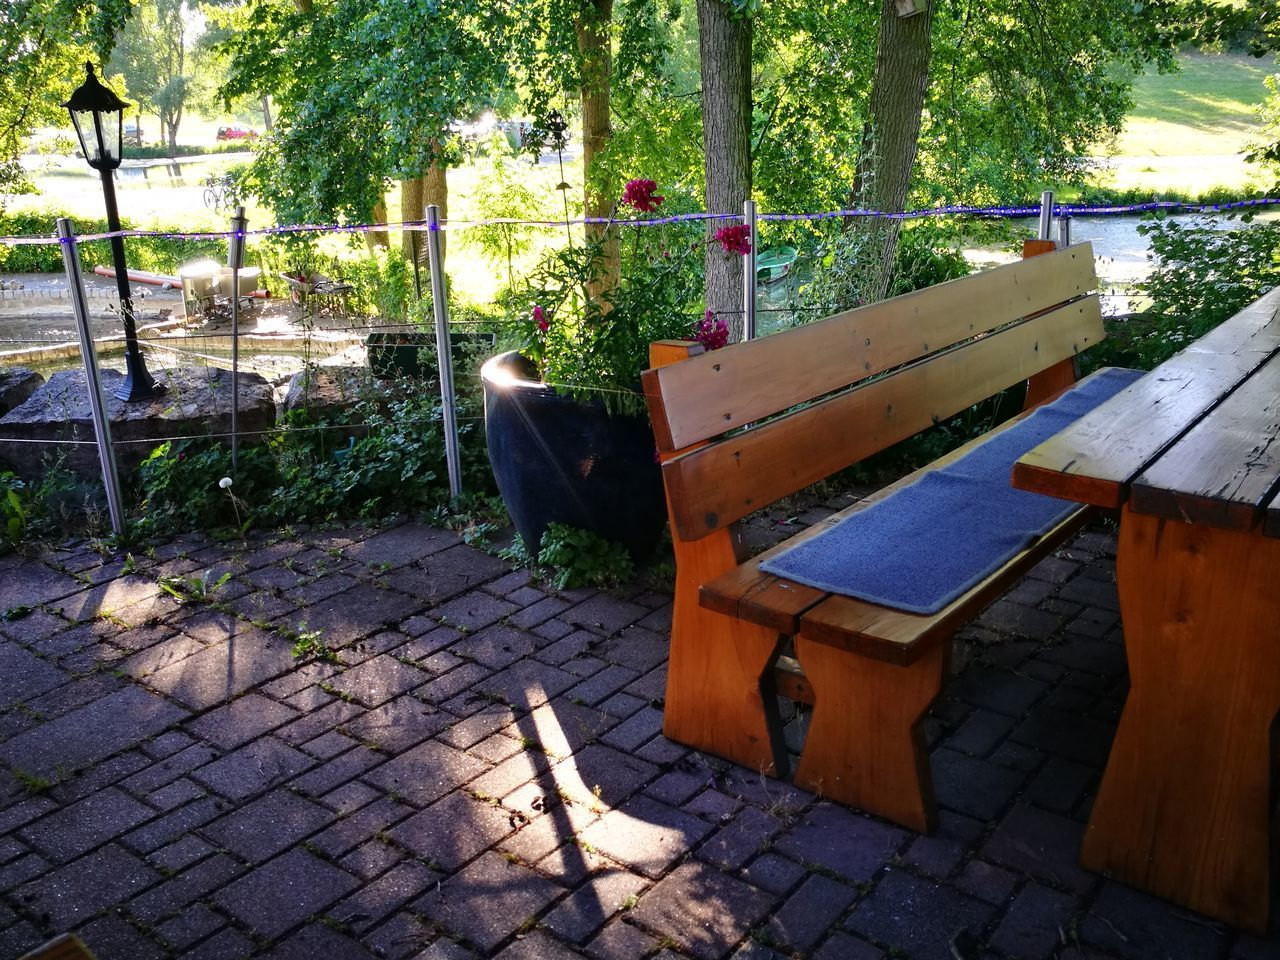 💚 Böllstrichseen 💚 Biergarten Fishfarm Fishing Pond 💚 Outdoors No People Day Chair Backgrounds No Filter, No Edit, Just Photography No Edit/no Filter EyeEm Best Shots Smartphonephotography Eye4photography  Exceptional Photographs Beauty In Nature Good Evening Guten Morgen EyEmNewHere